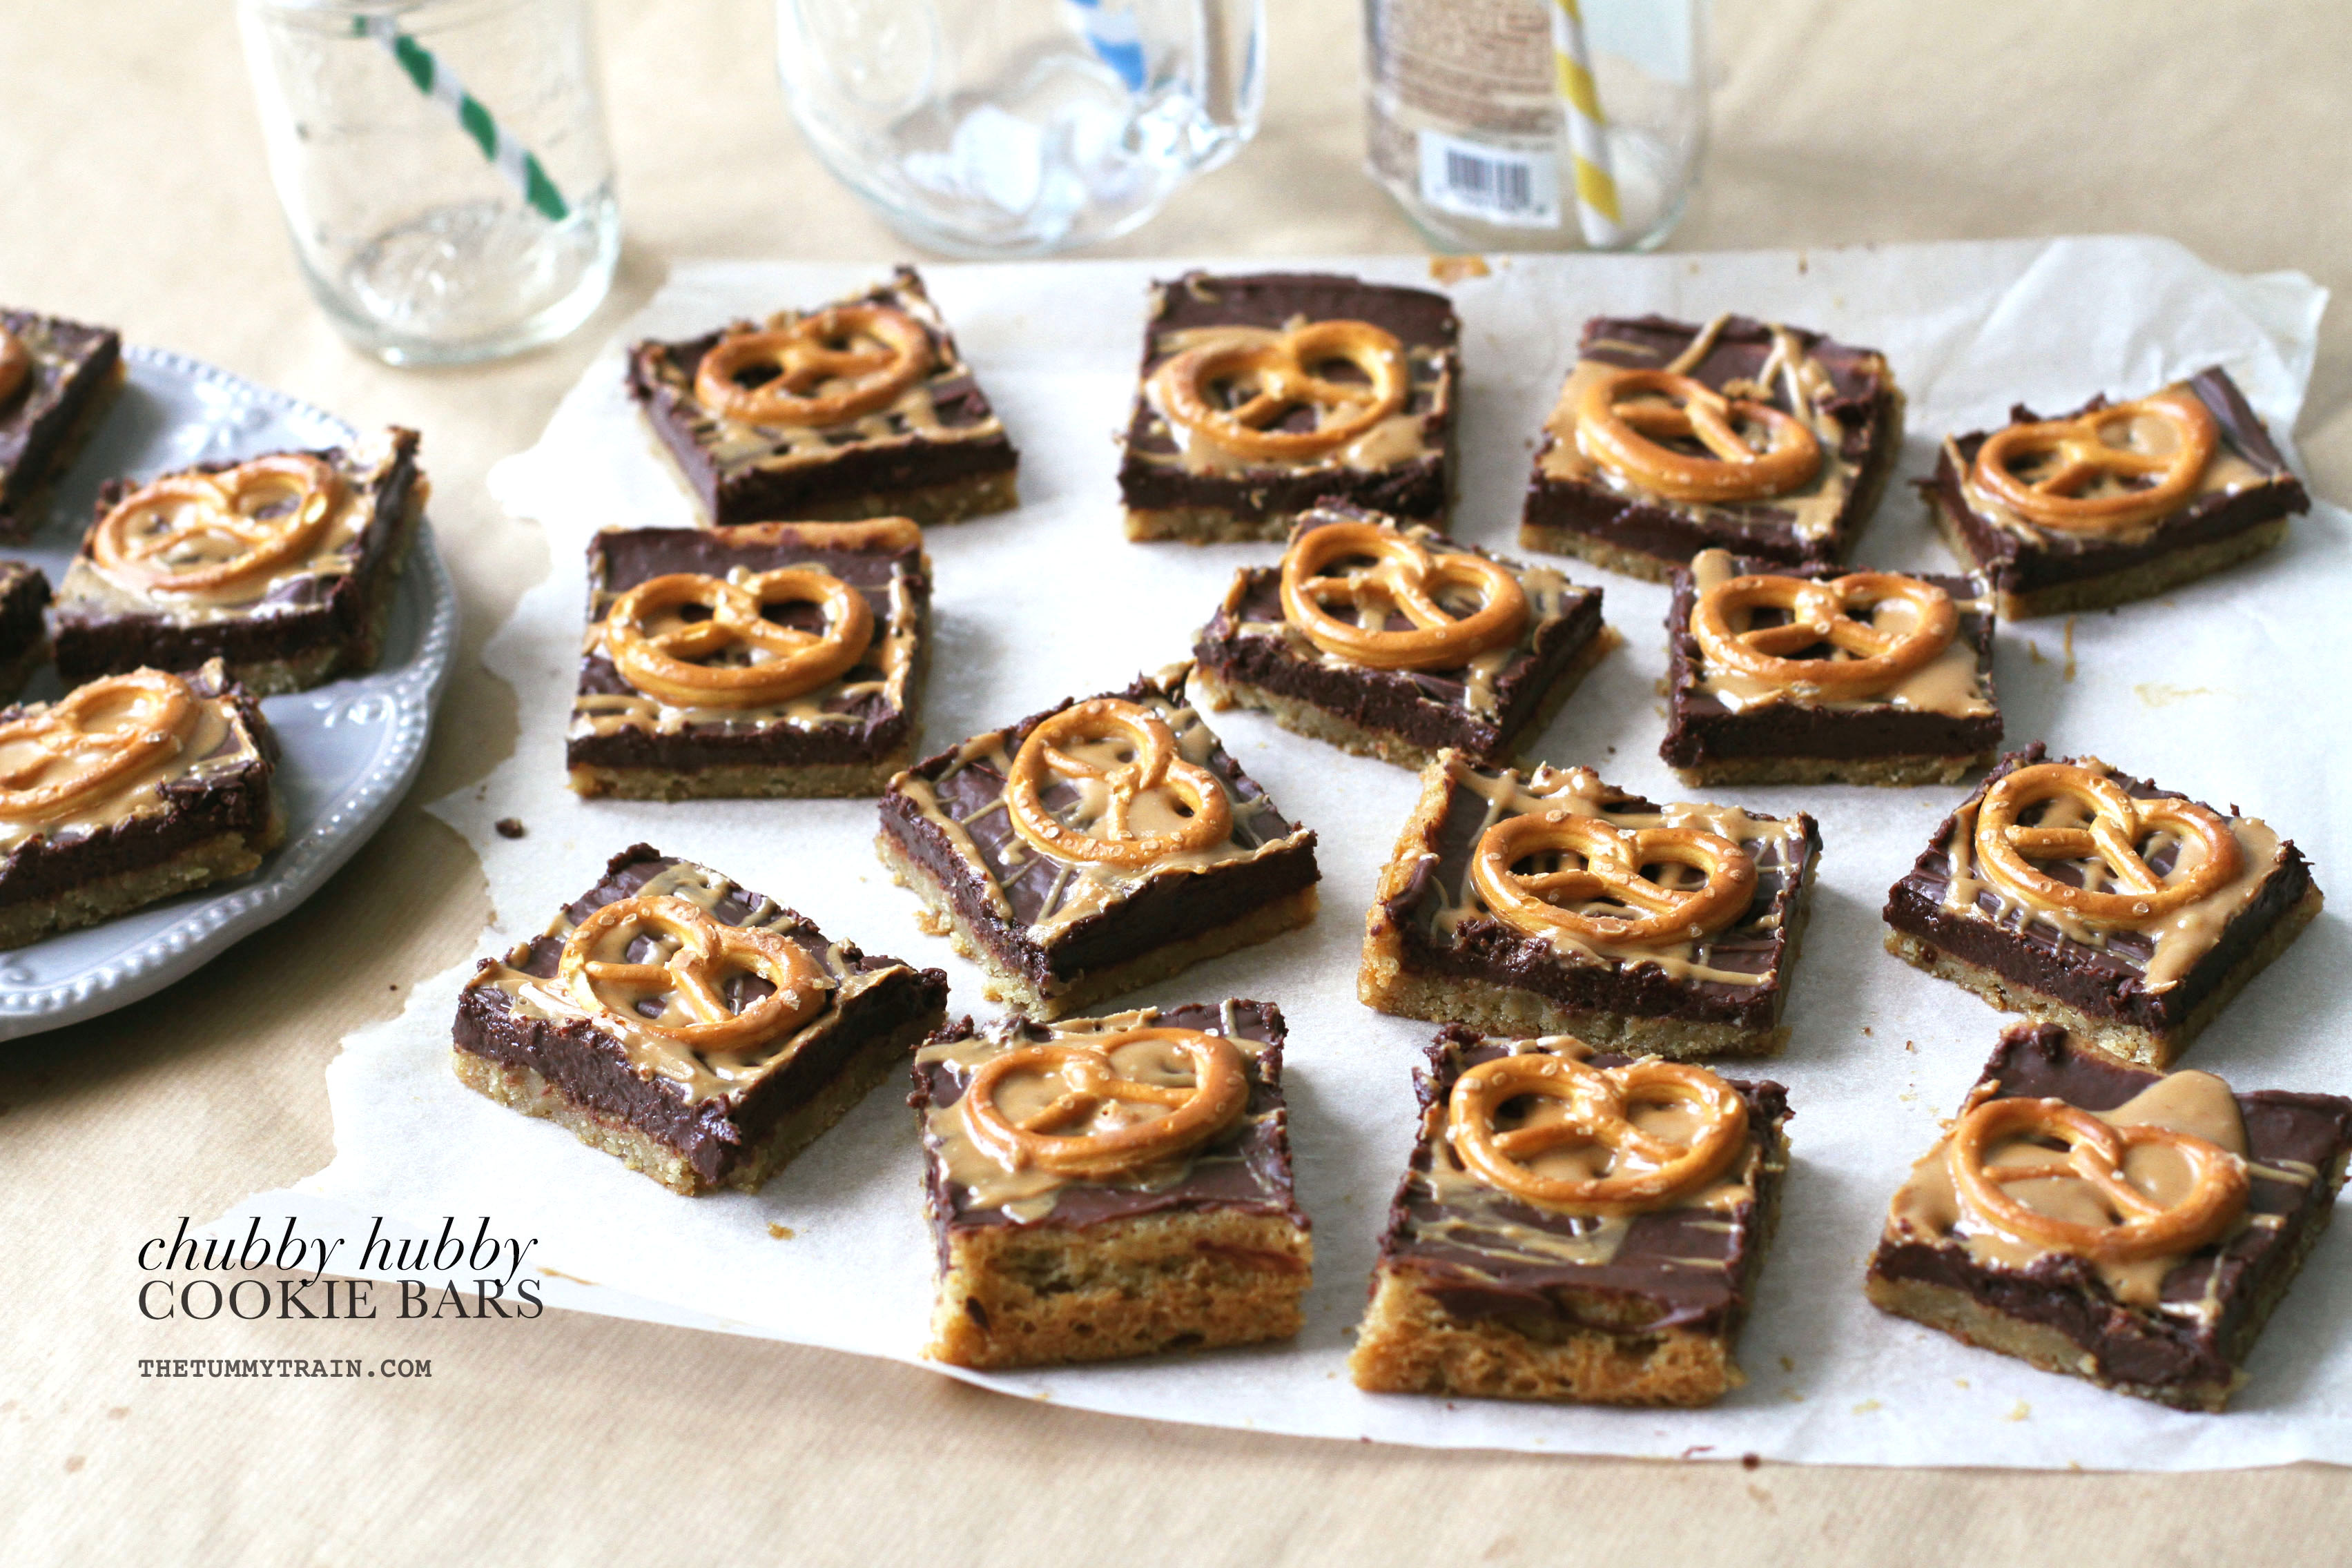 Chubby Hubby Cookie Bars 1 - My first time meeting the Chubby Hubby Cookie Bars